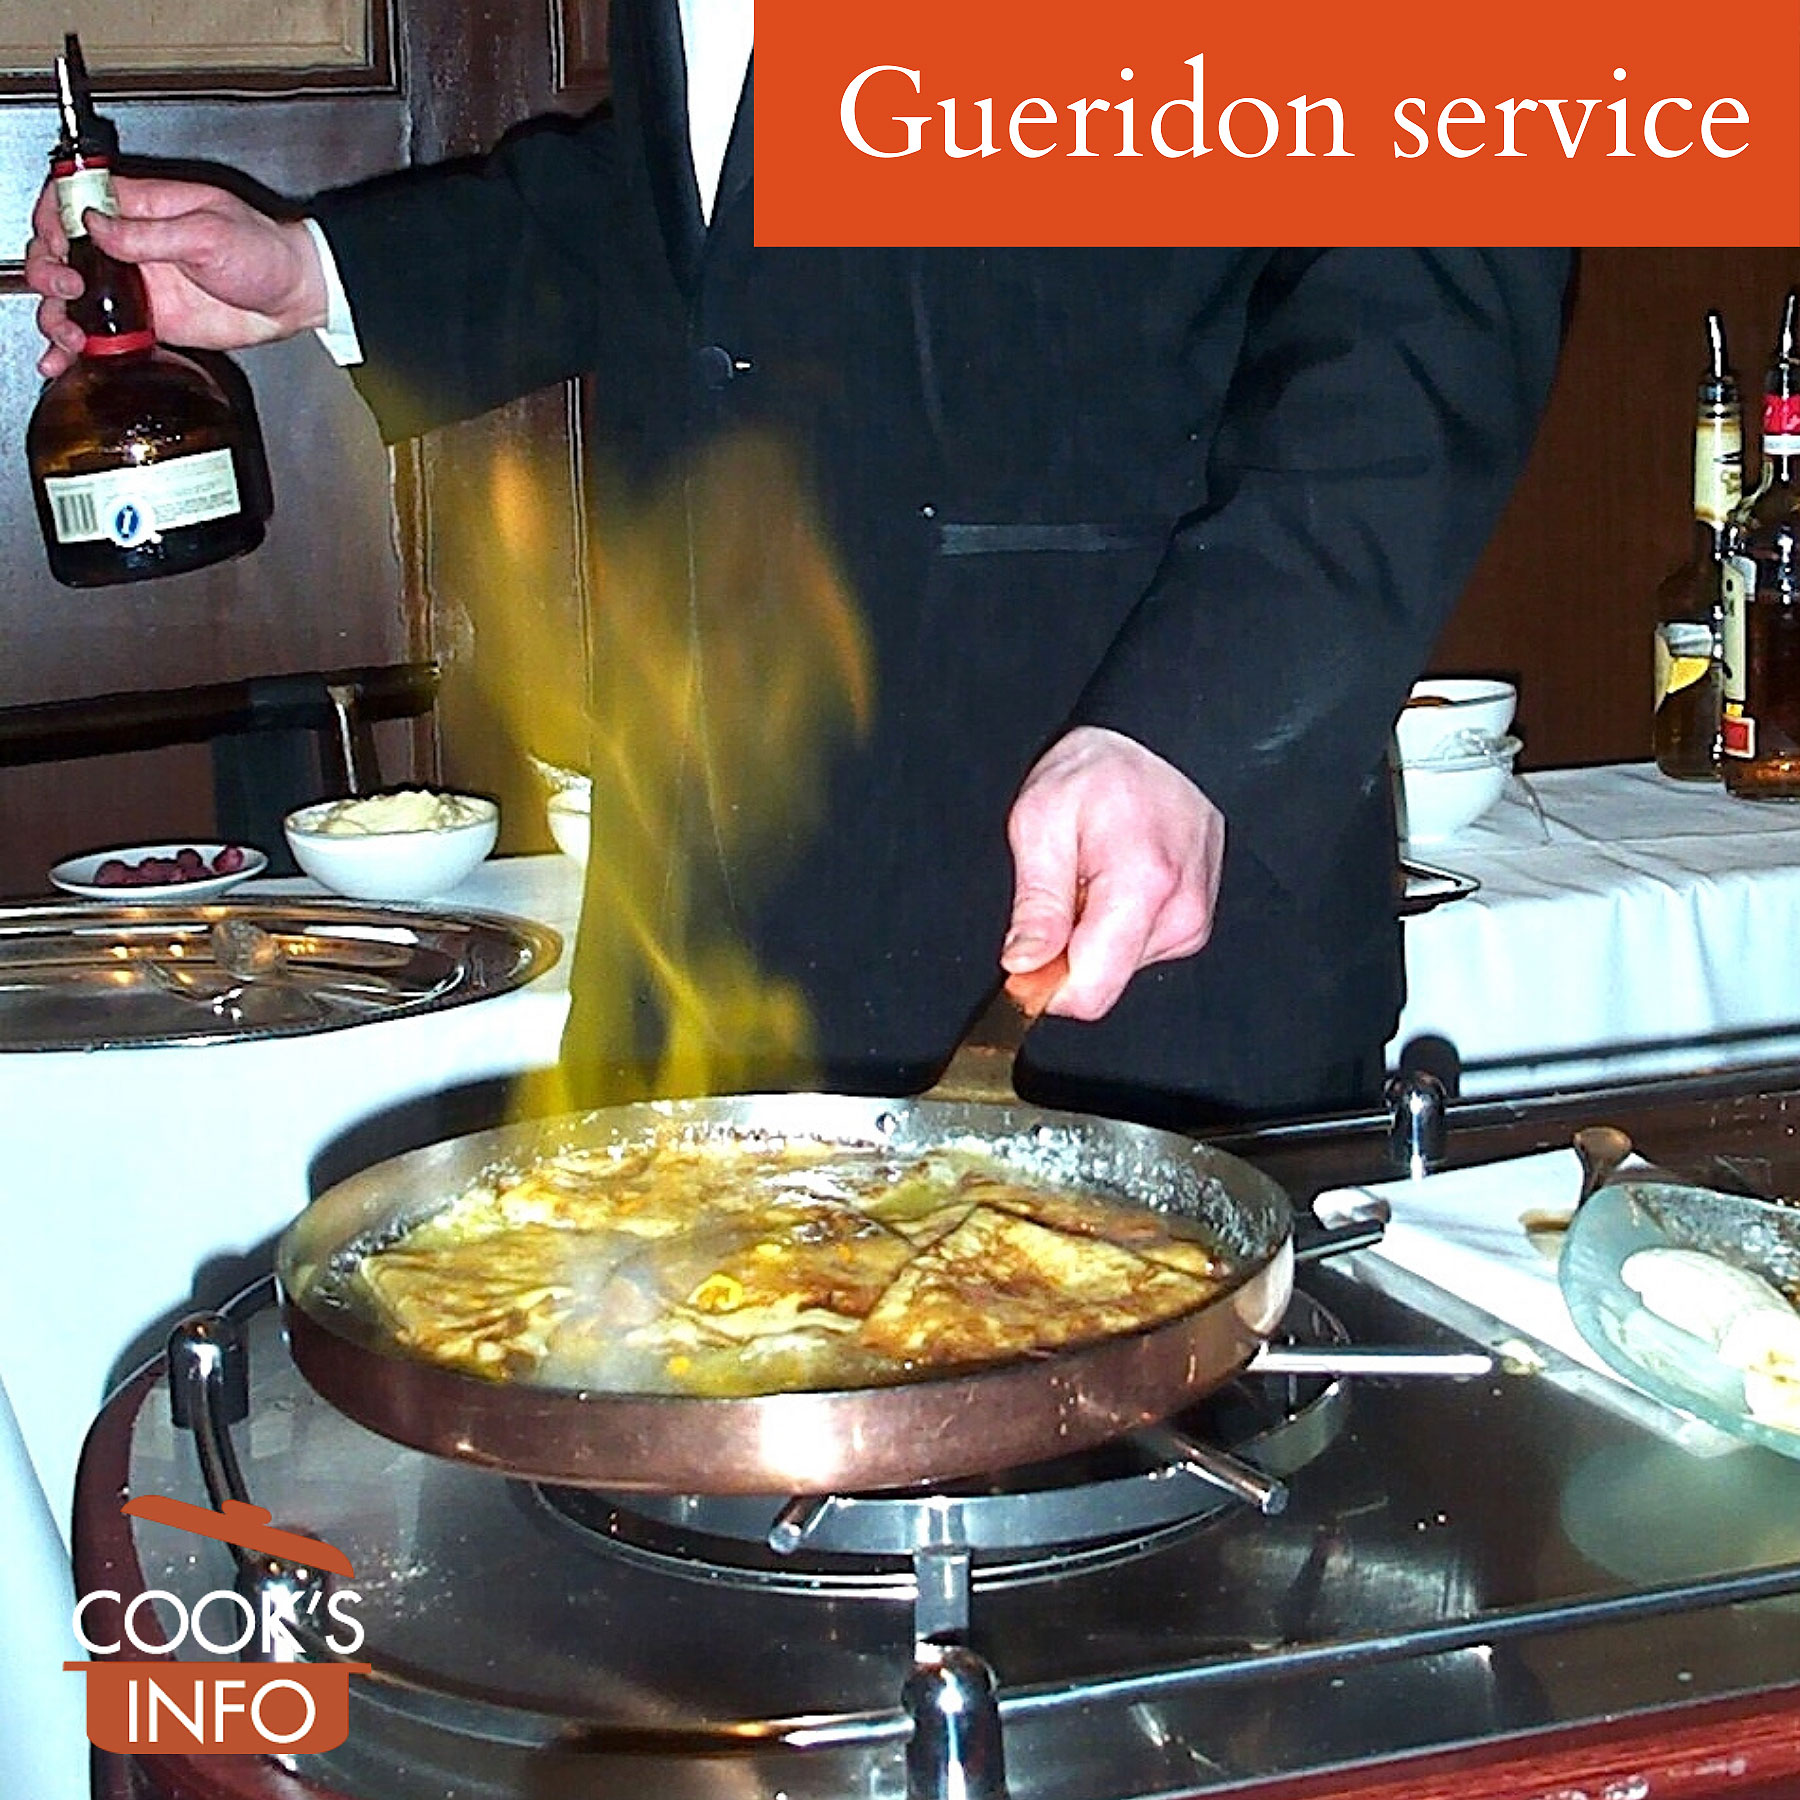 Gueridon service, food item being flambeed